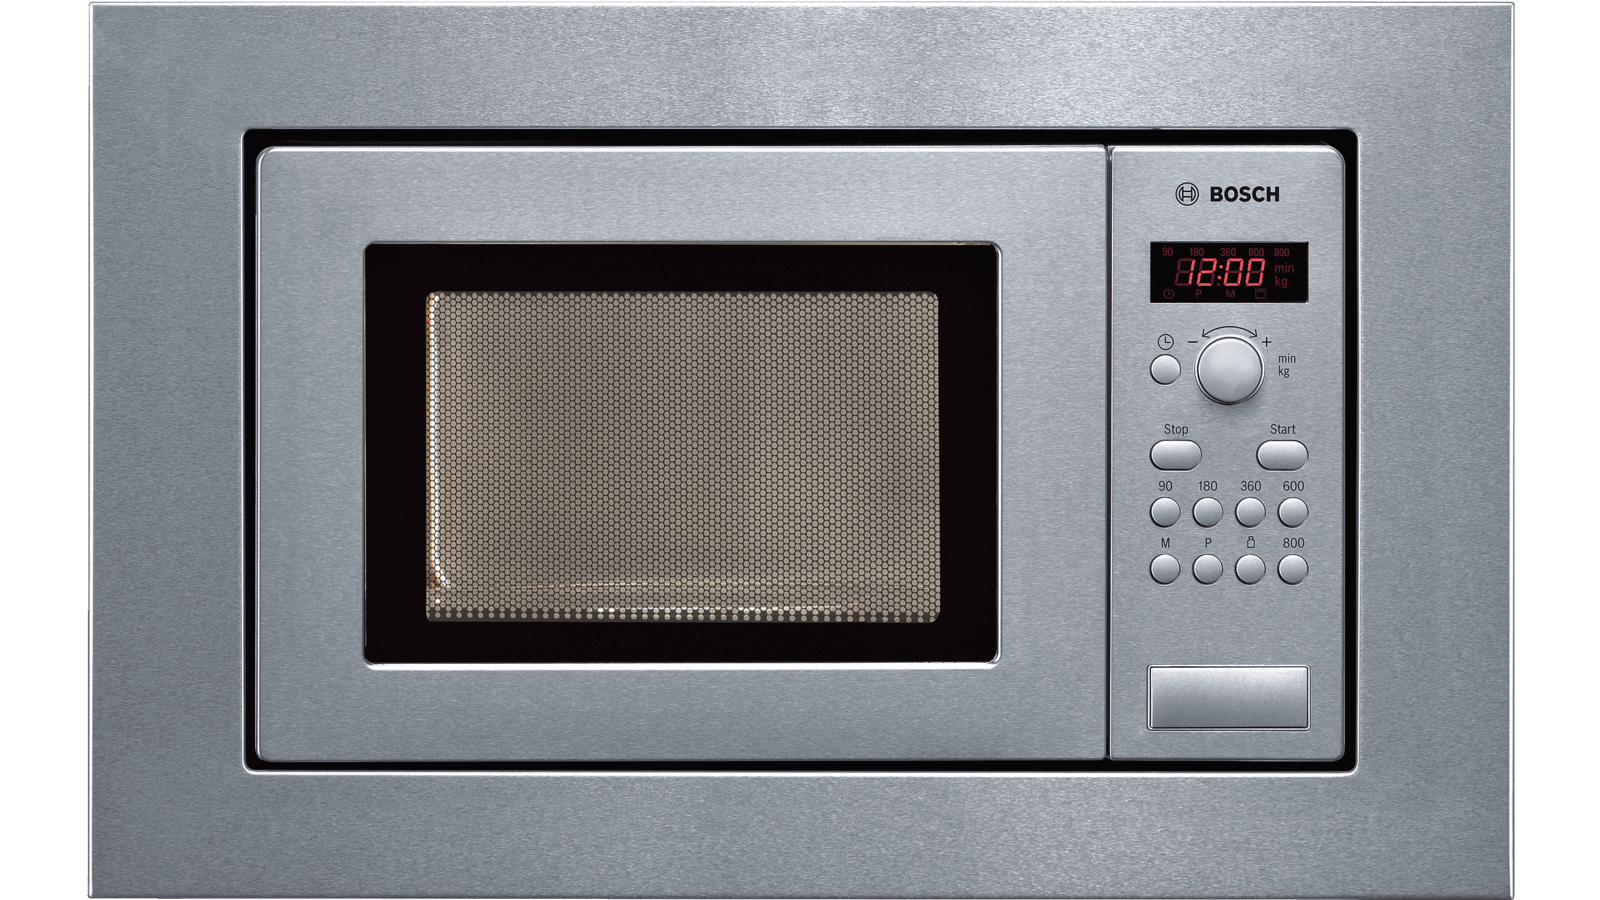 serie 2 compact microwave oven hmt75m651b